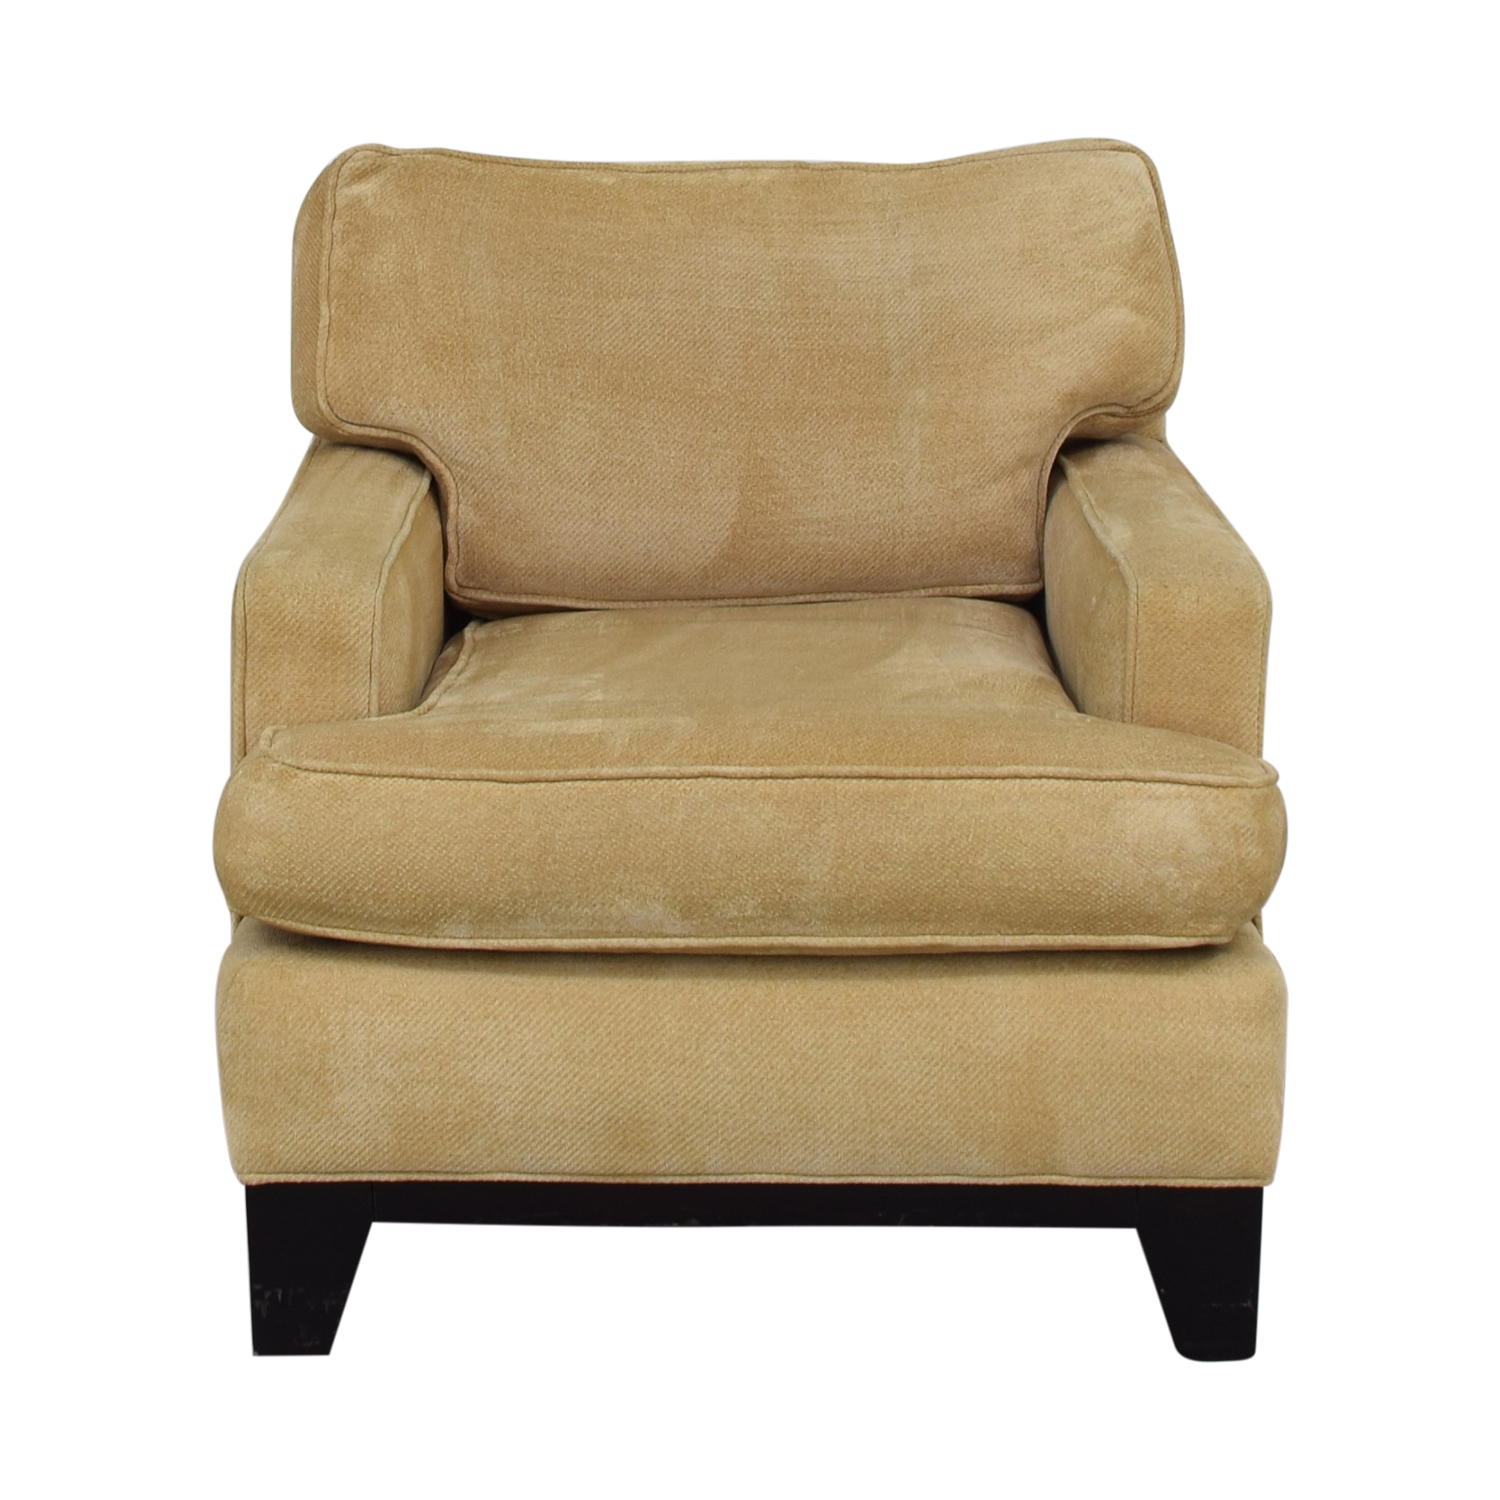 shop Williams Sonoma Beige Accent Chair Williams Sonoma Accent Chairs